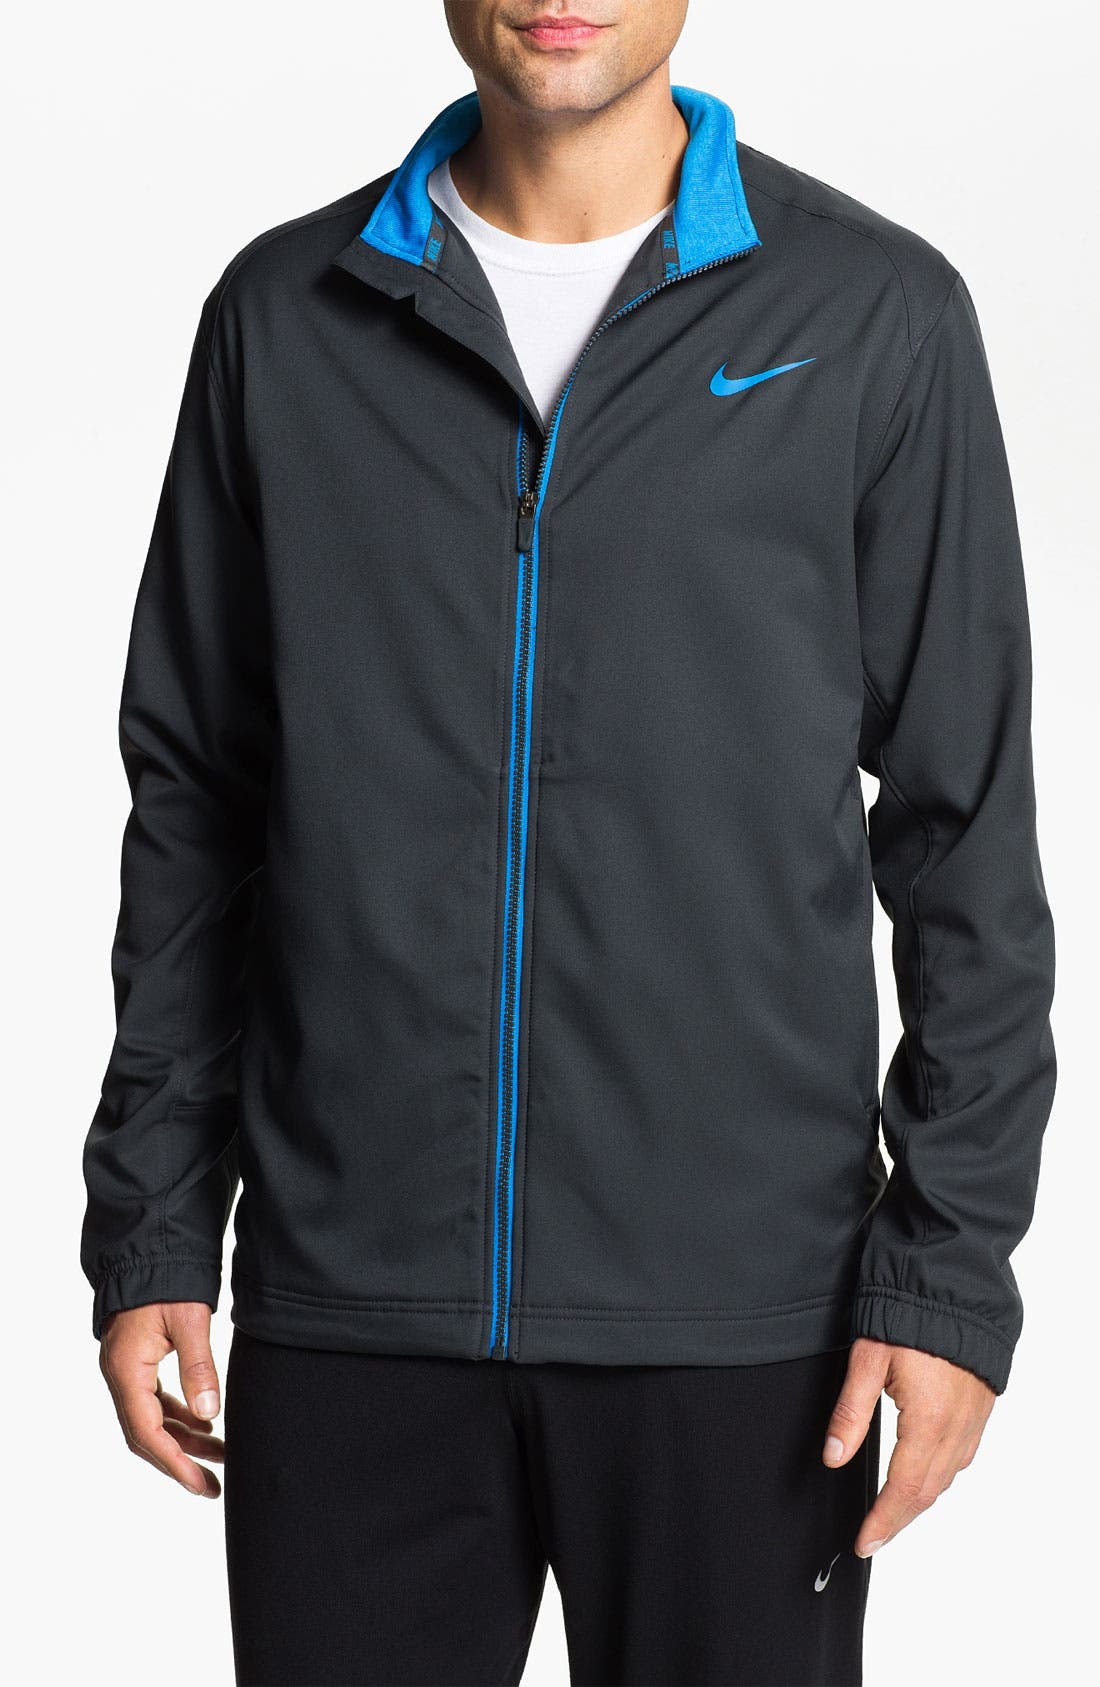 Main Image - Nike 'Speed' Jacket